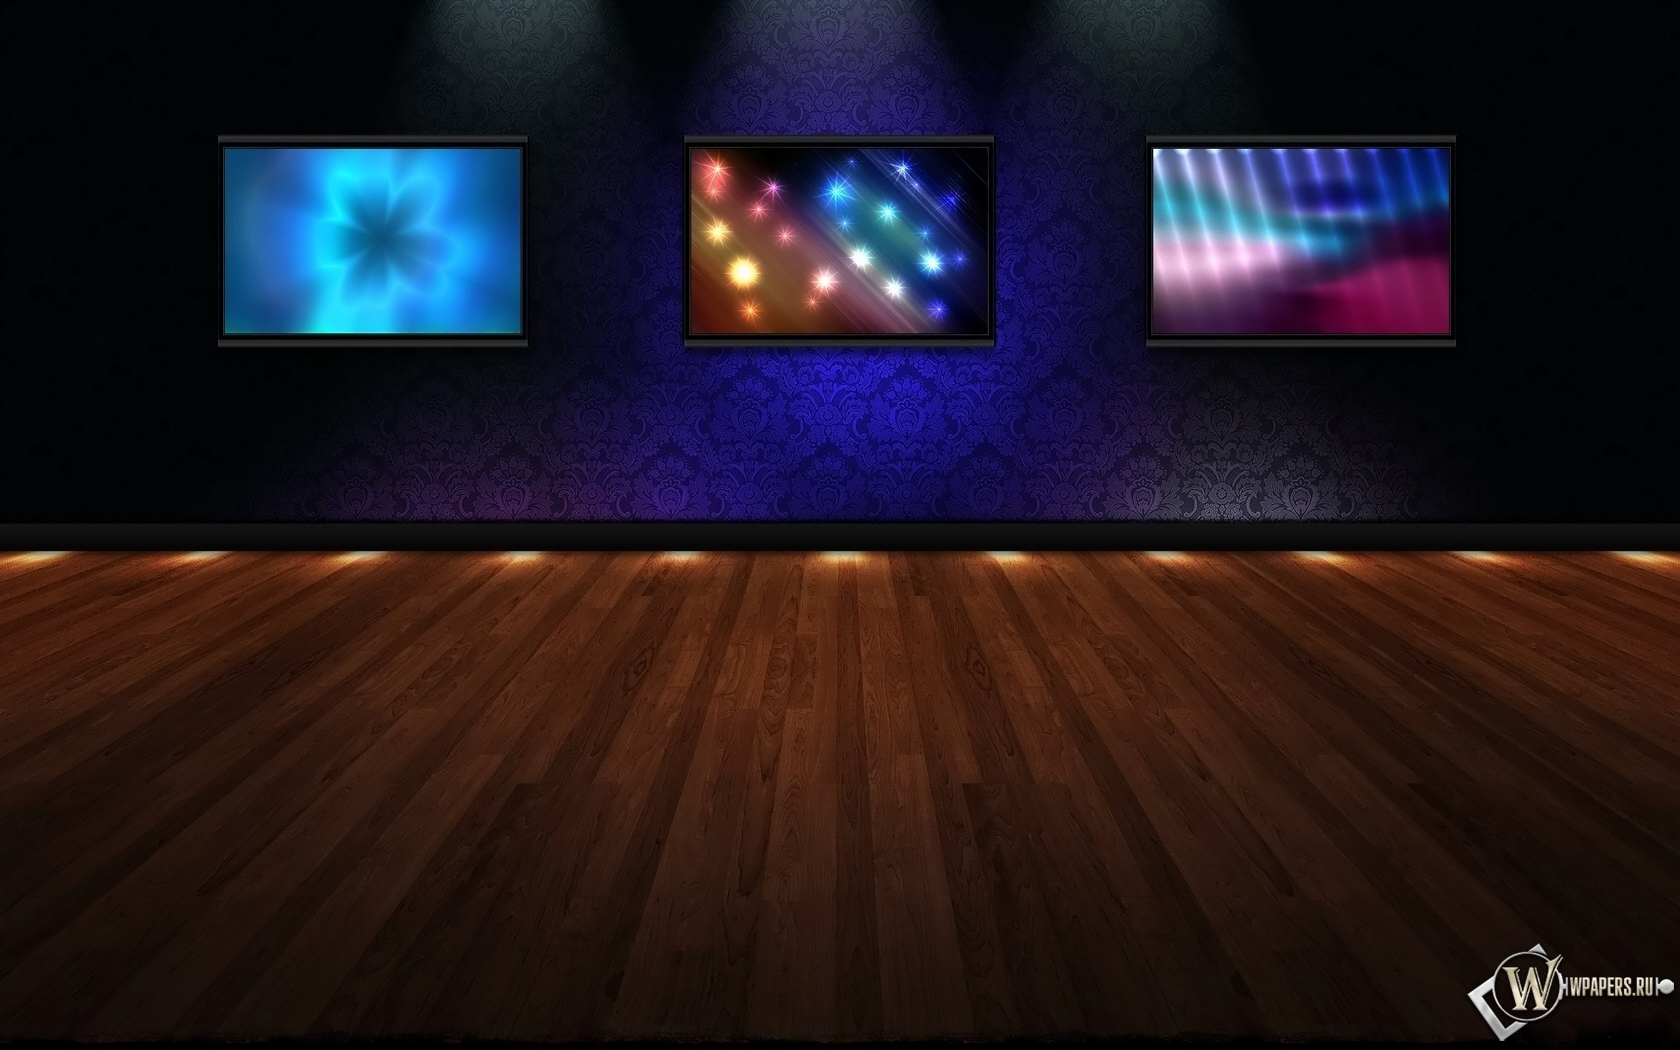 Chillout room 1680x1050